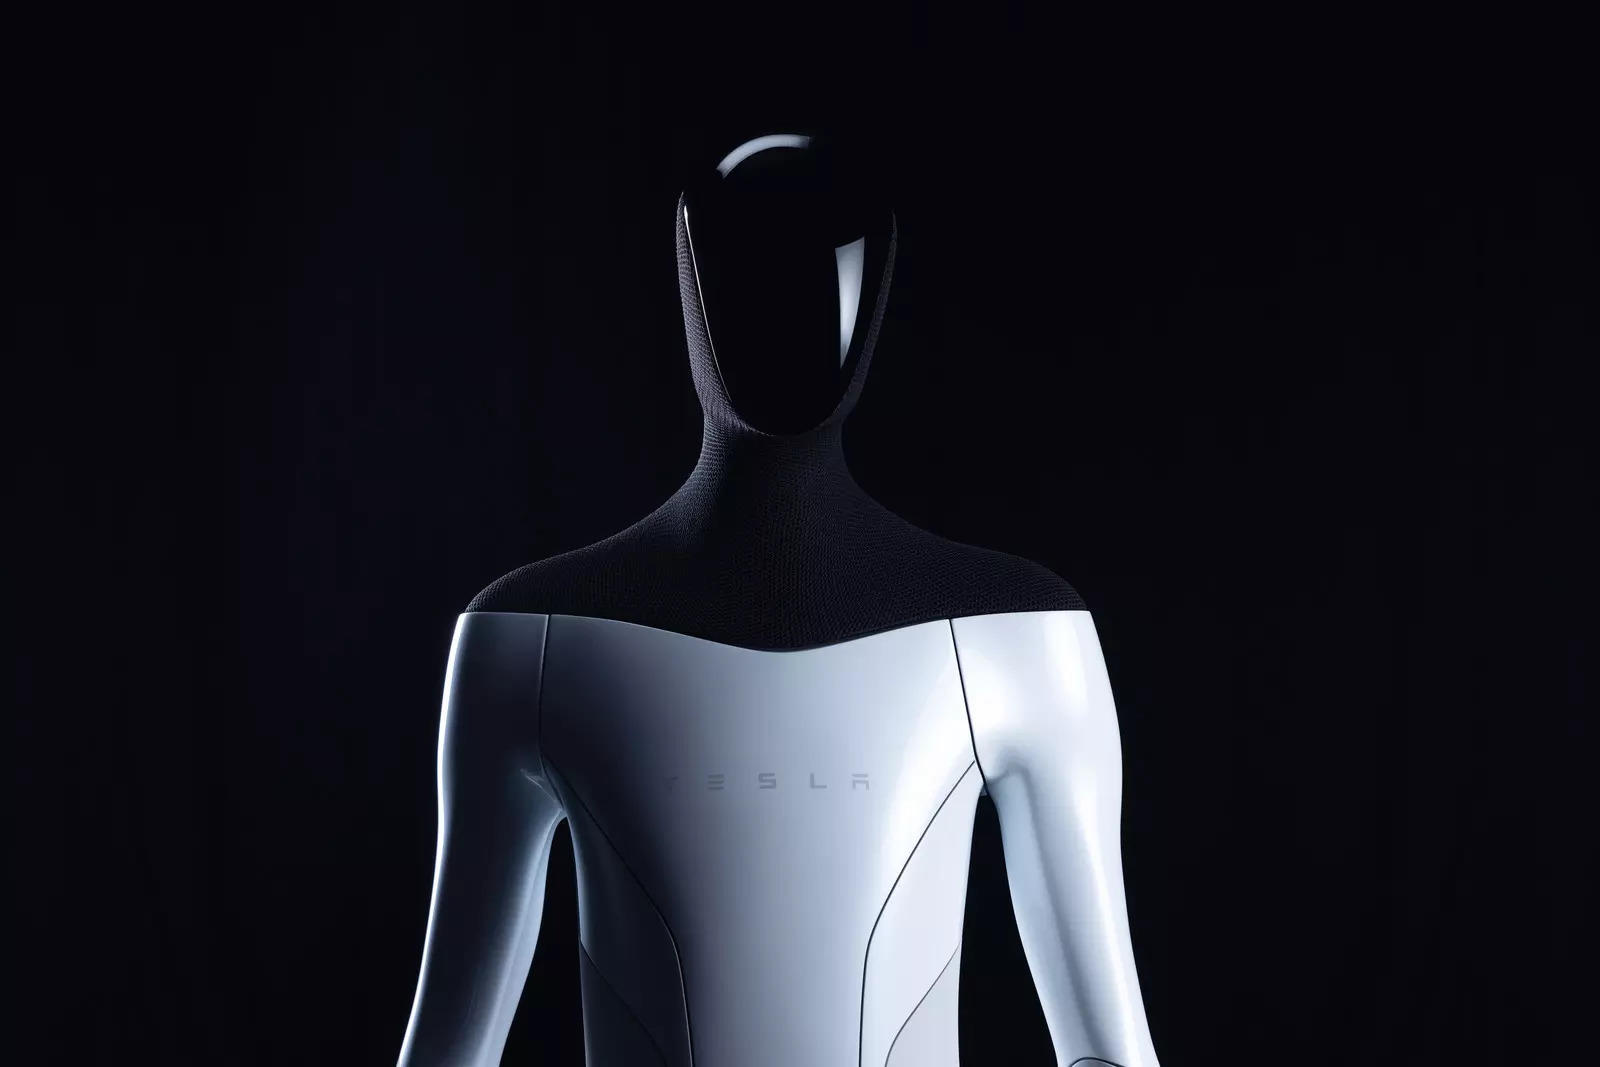 Recently, Musk announced that his company is working on a humanoid robot and the prototype will arrive sometime next year.